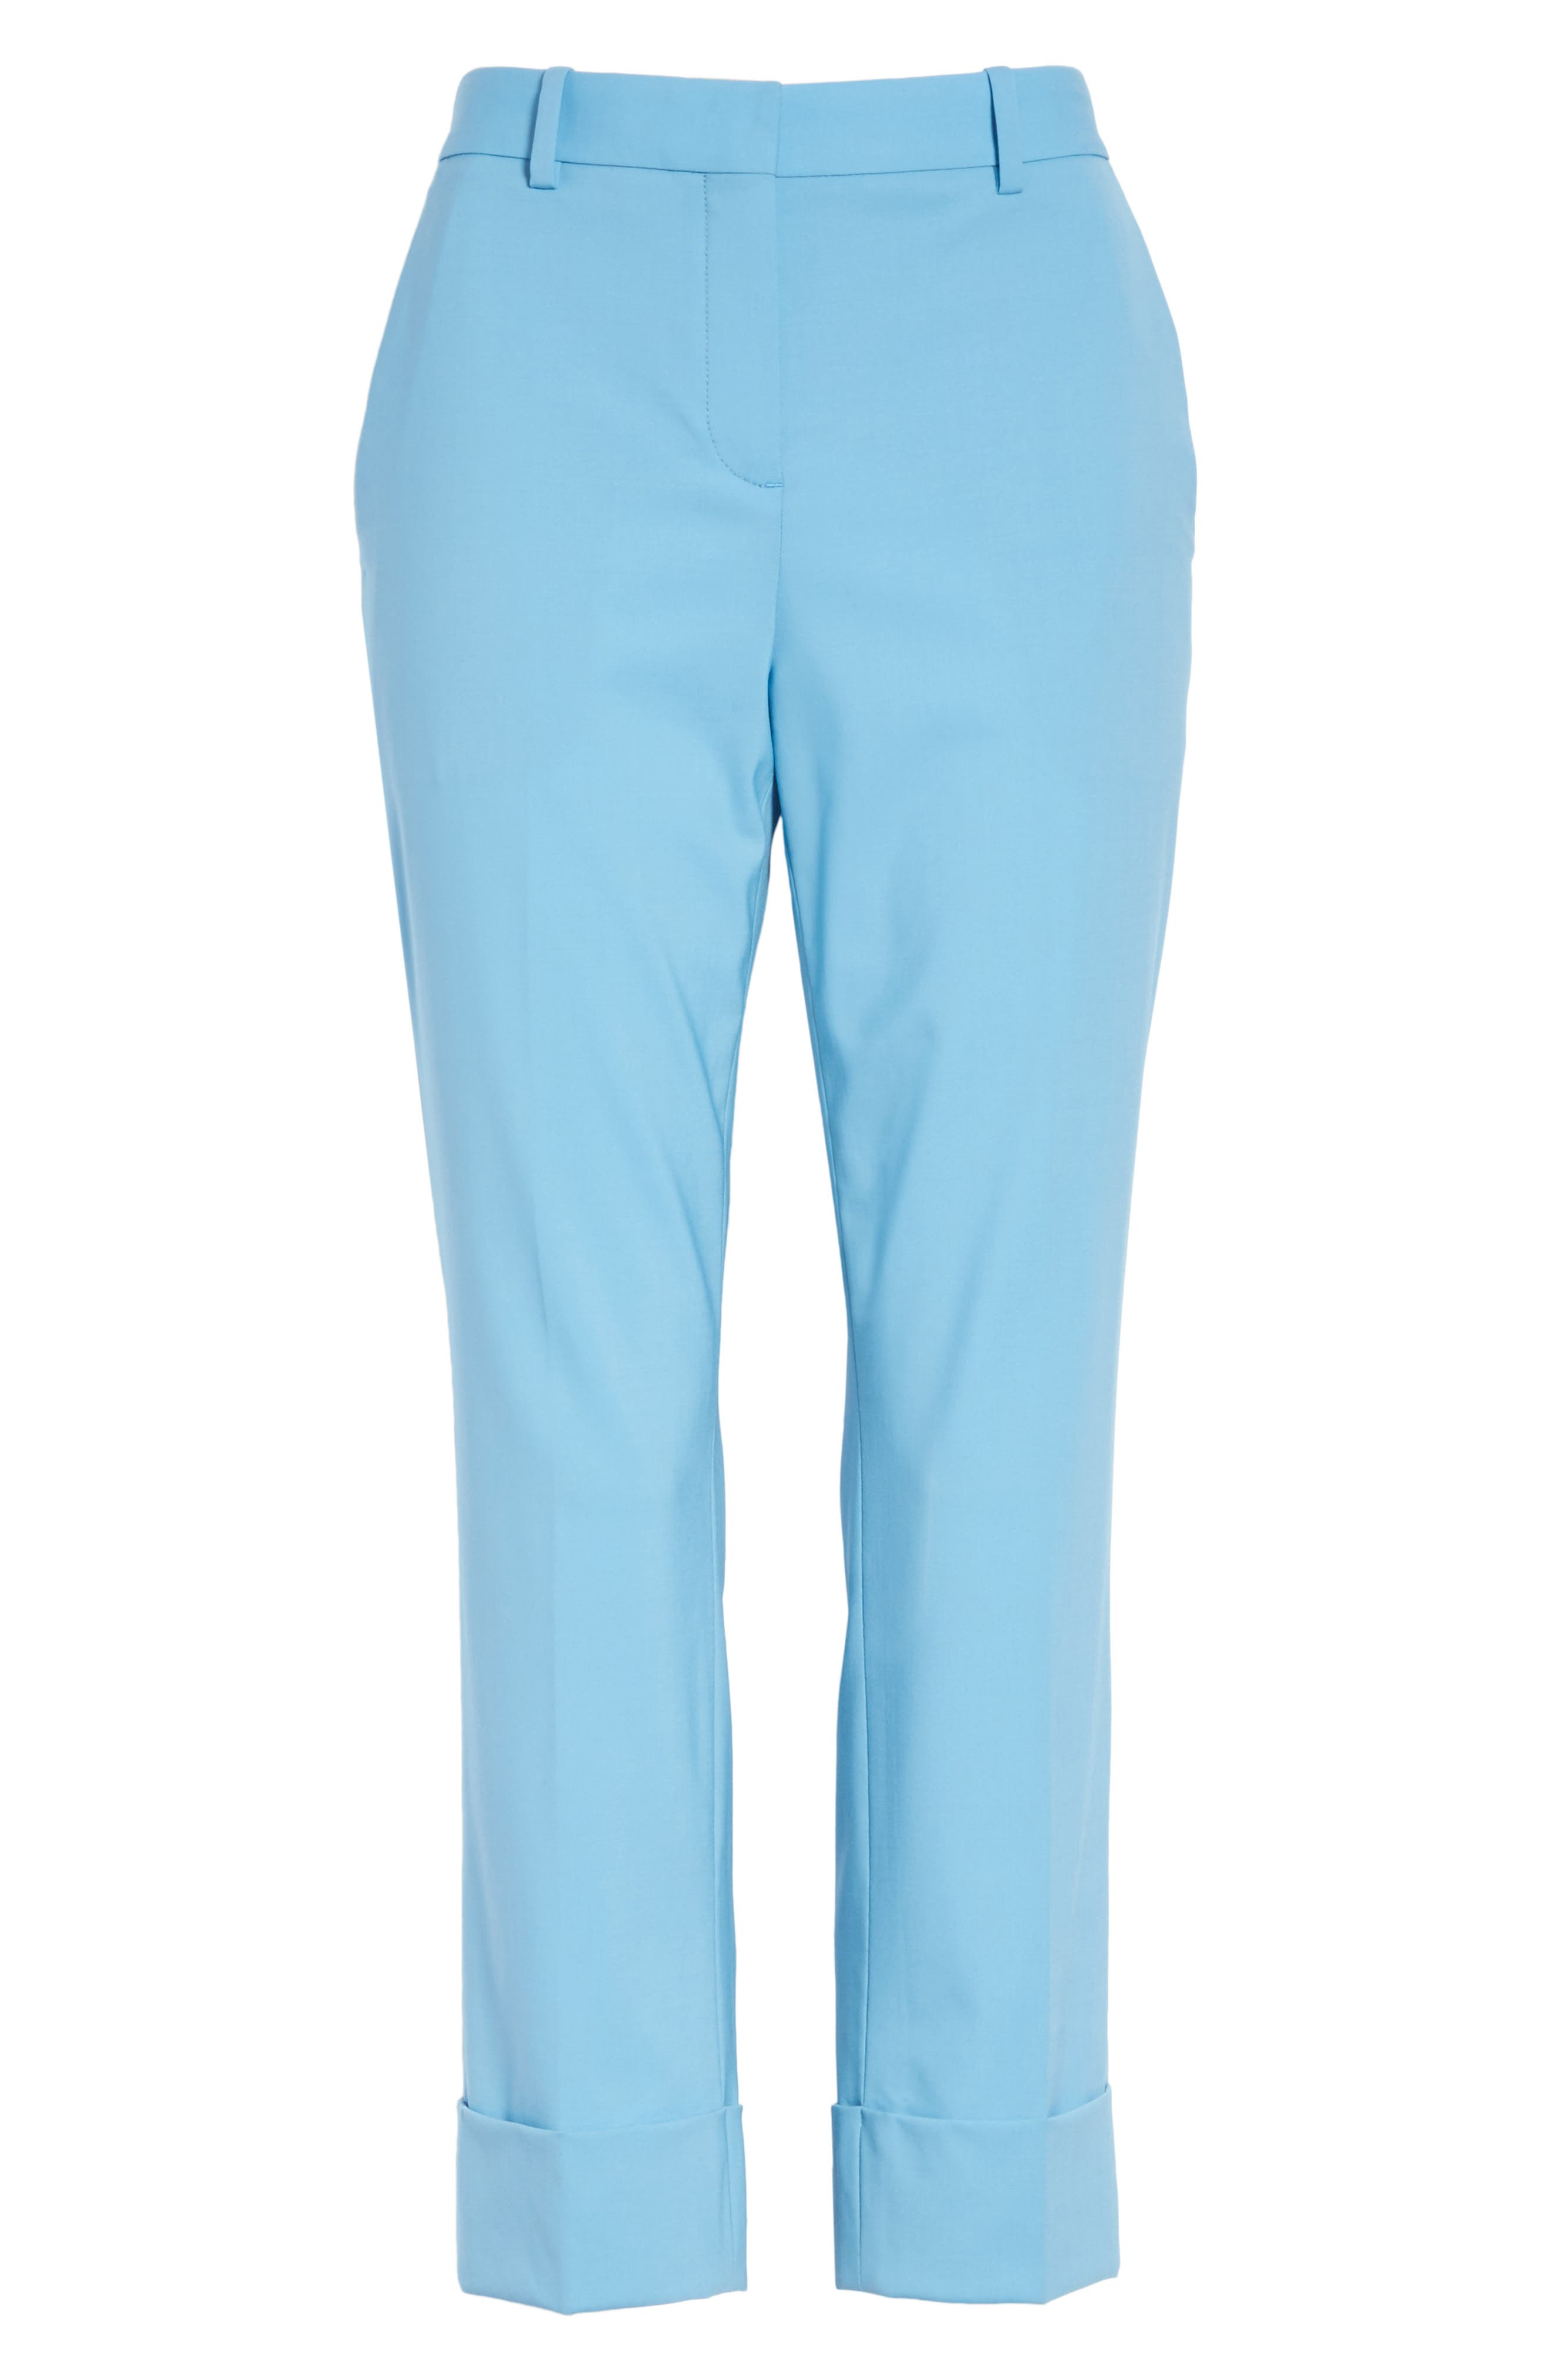 Cuffed Stretch Wool Crop Pants,                             Alternate thumbnail 6, color,                             493